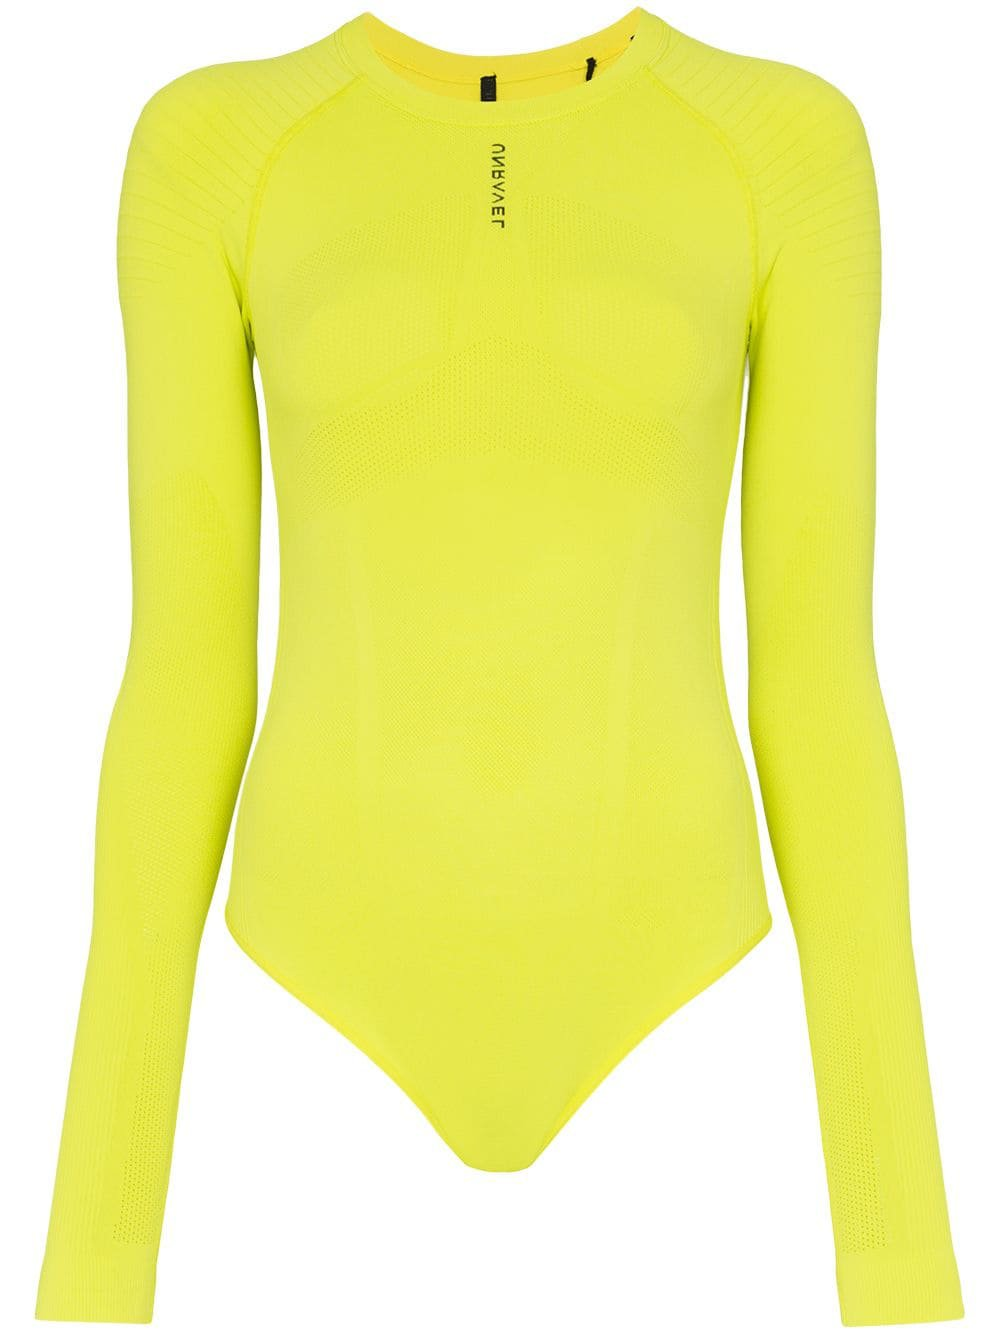 Unravel Project Seamless Tech Bodysuit - Farfetch